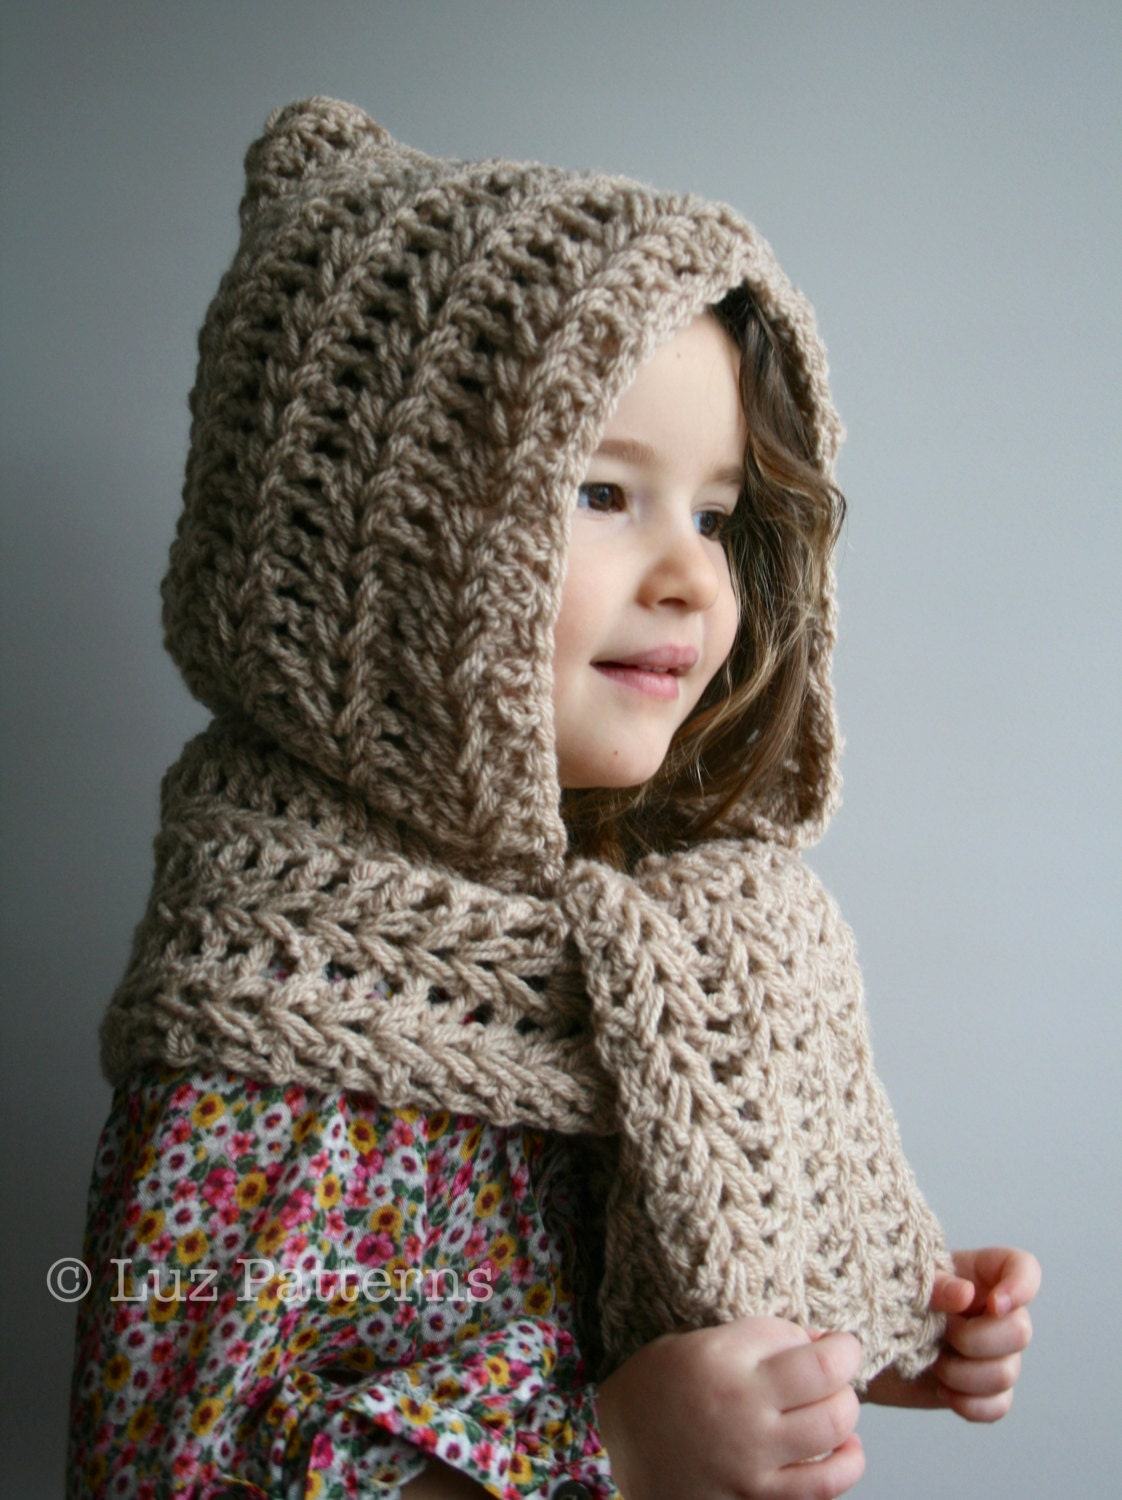 Crochet Patterns For Scarf And Hat : Crochet Pattern INSTANT DOWNLOAD crochet hat pattern hooded